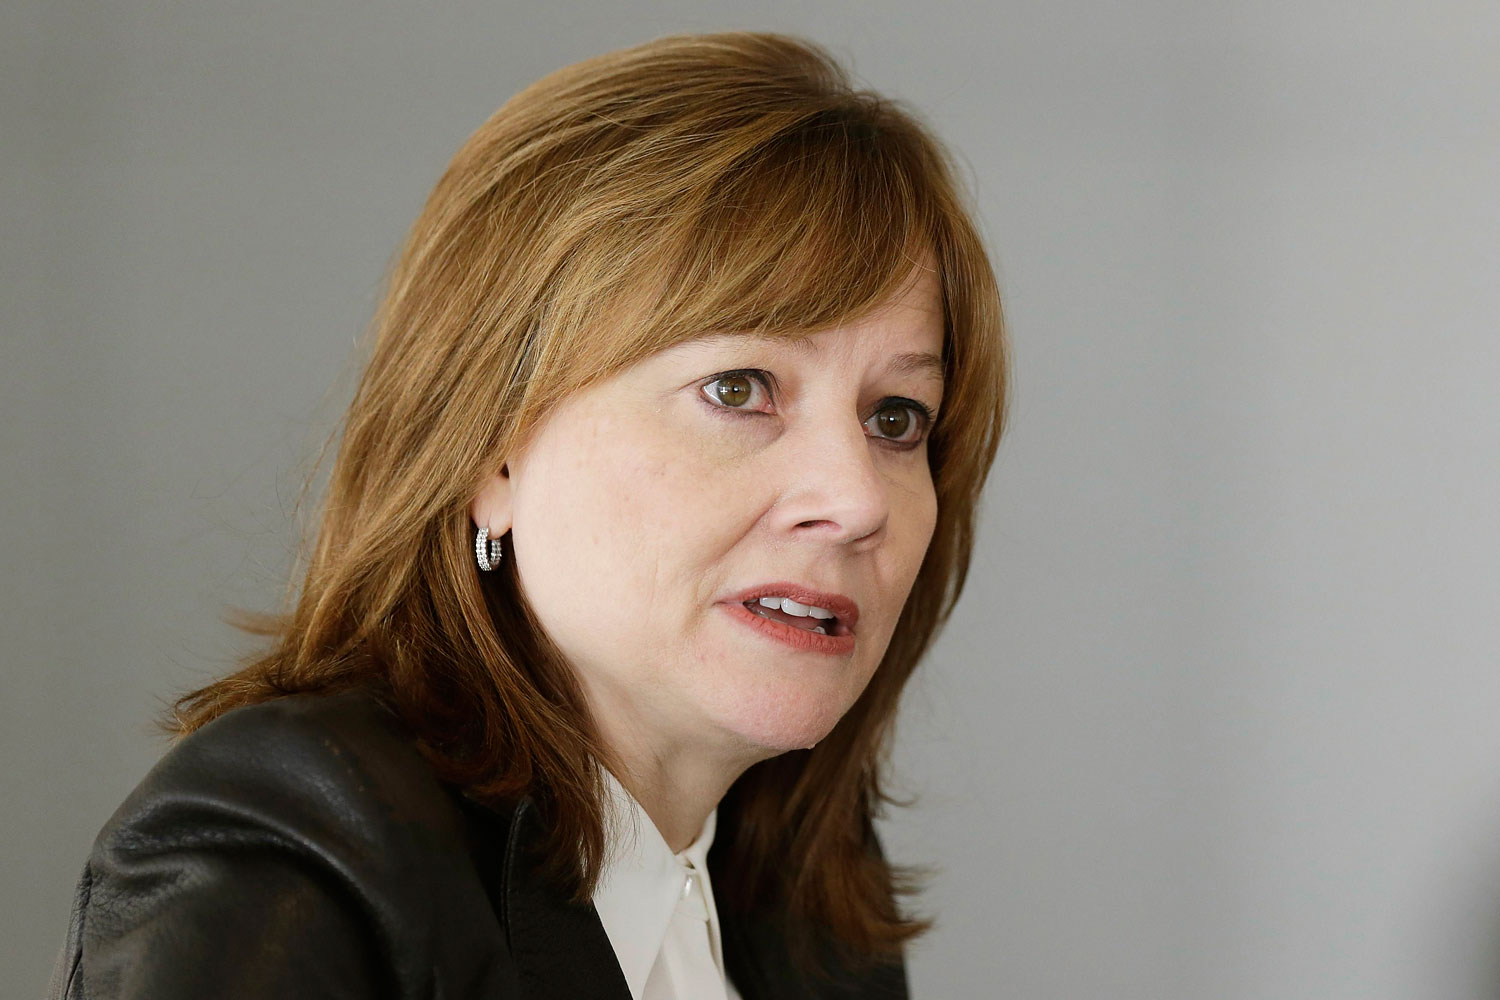 General Motors Co's new chief executive Mary Barra addresses the media during a roundtable meeting with journalists in Detroit, Michigan in this file photo from January 23, 2014.